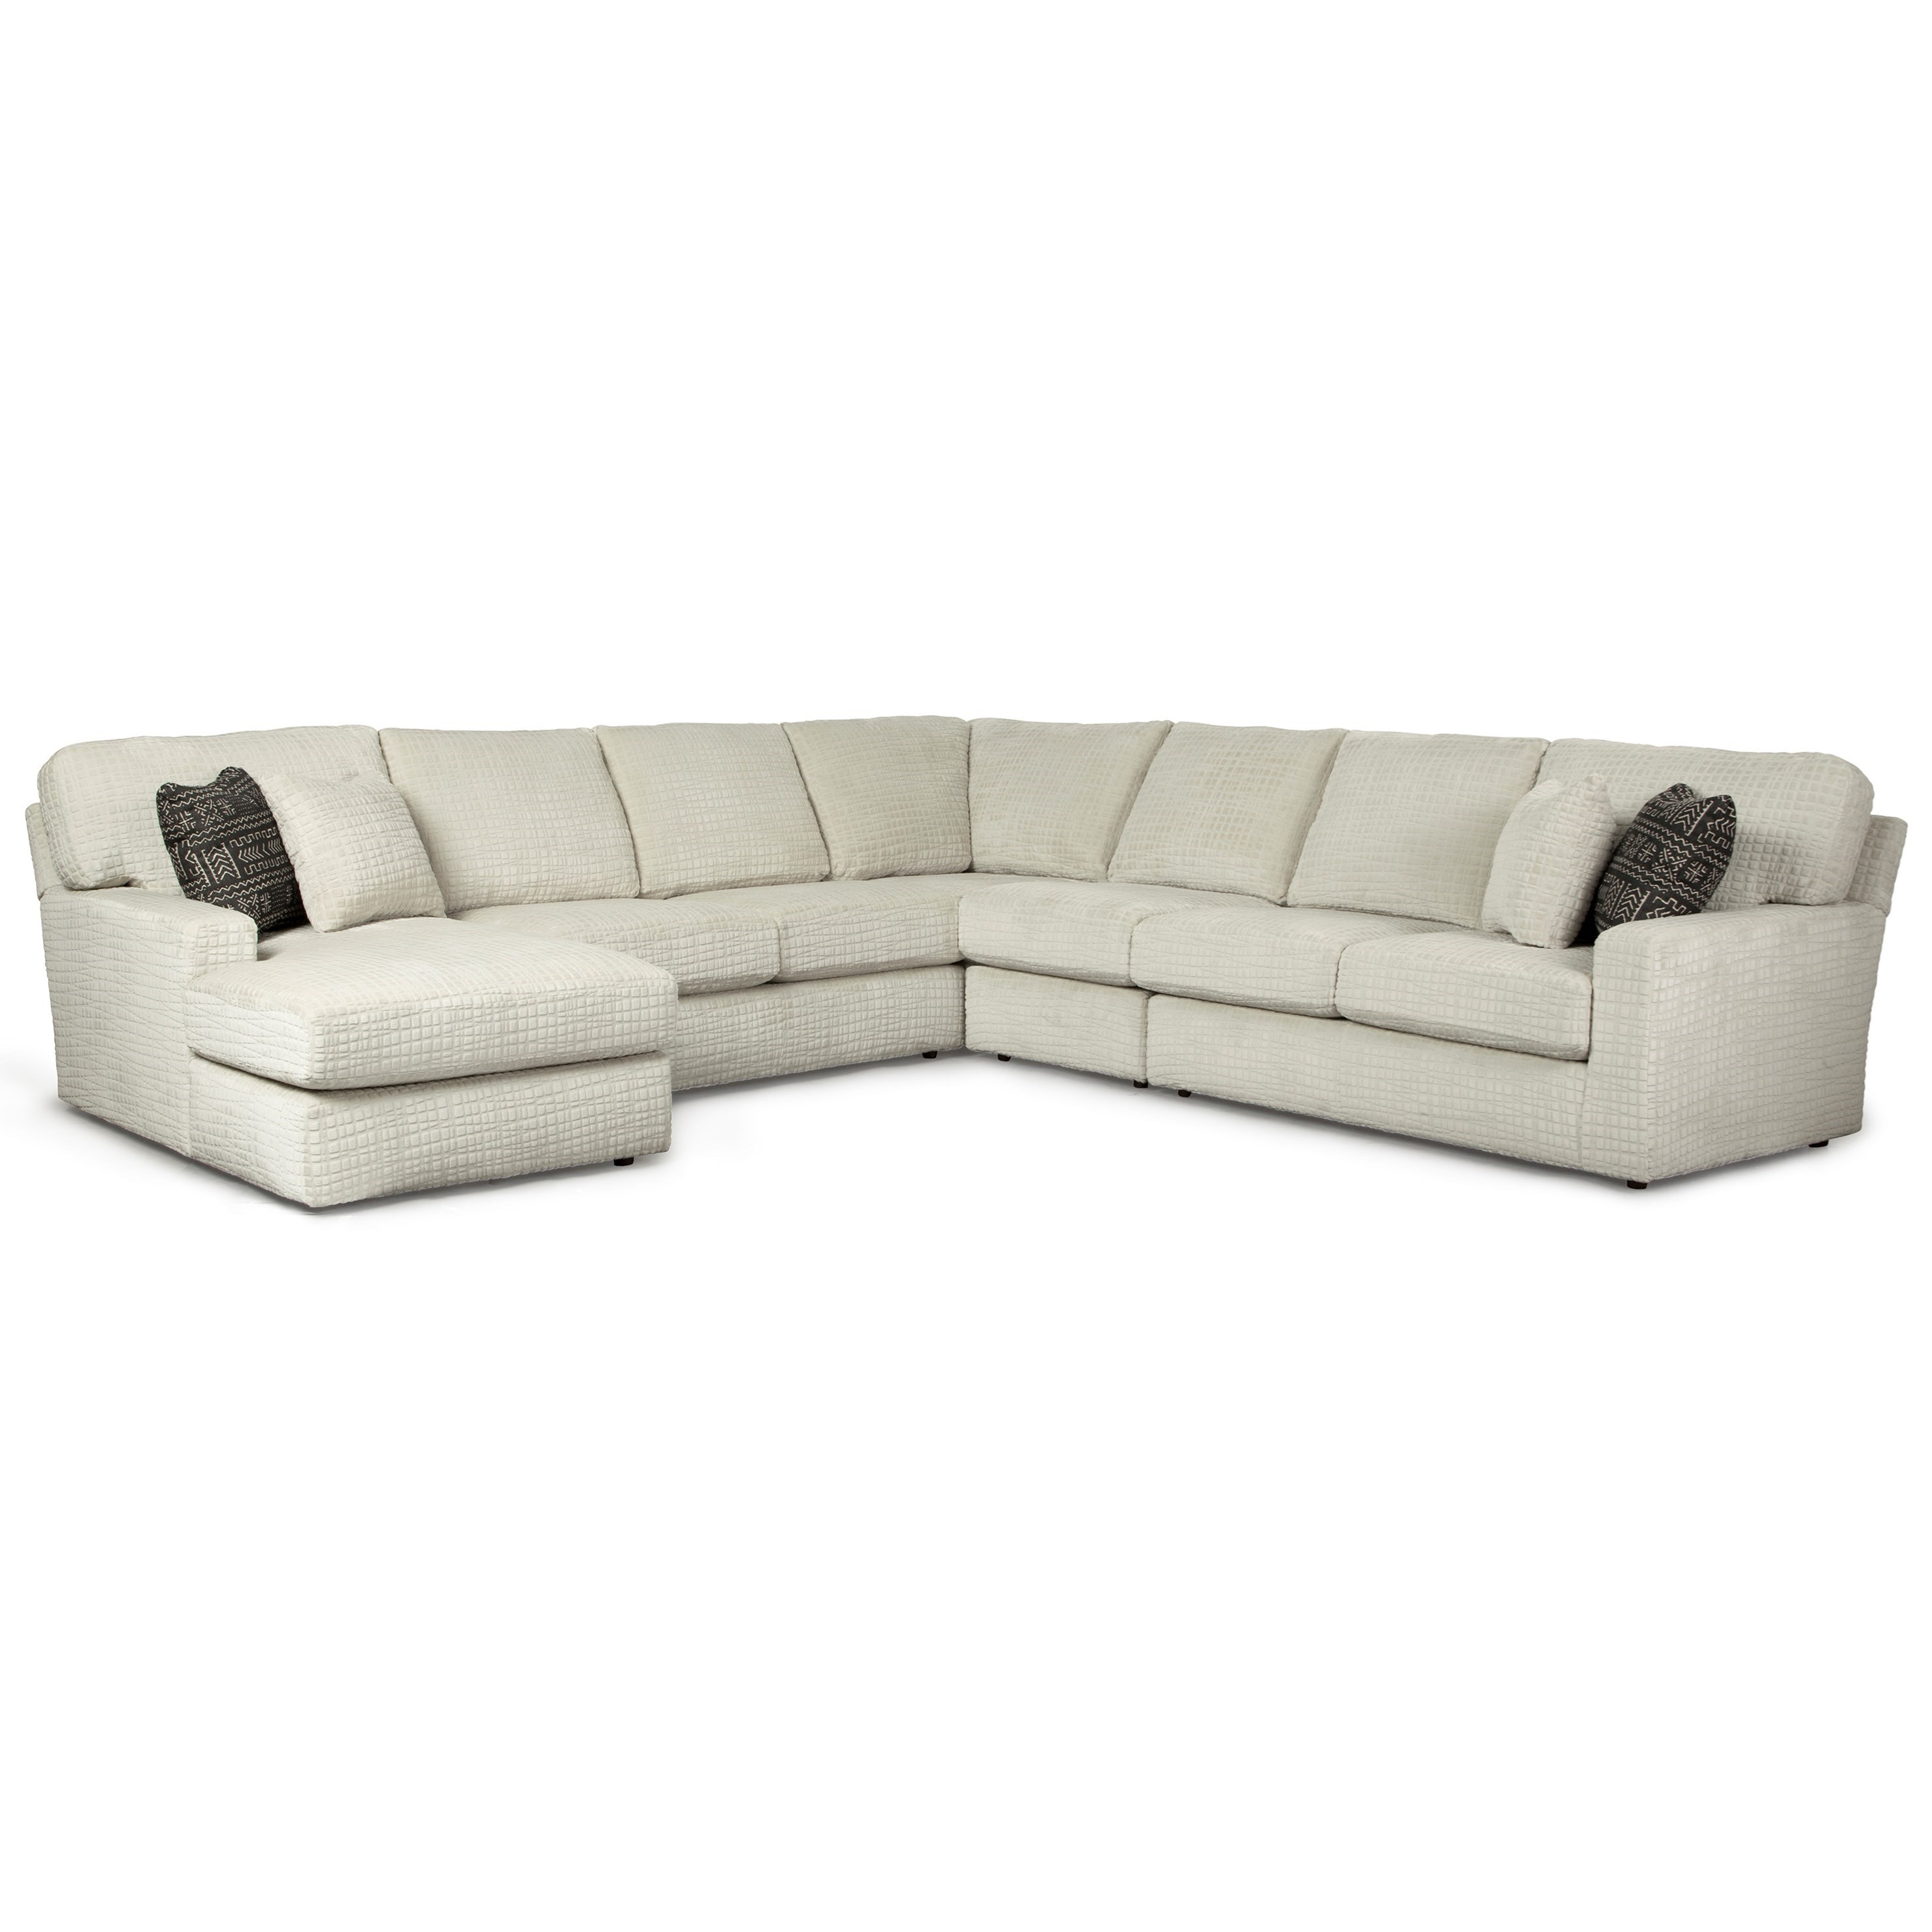 5 Pc Sectional Sofa w/ LAF Chaise